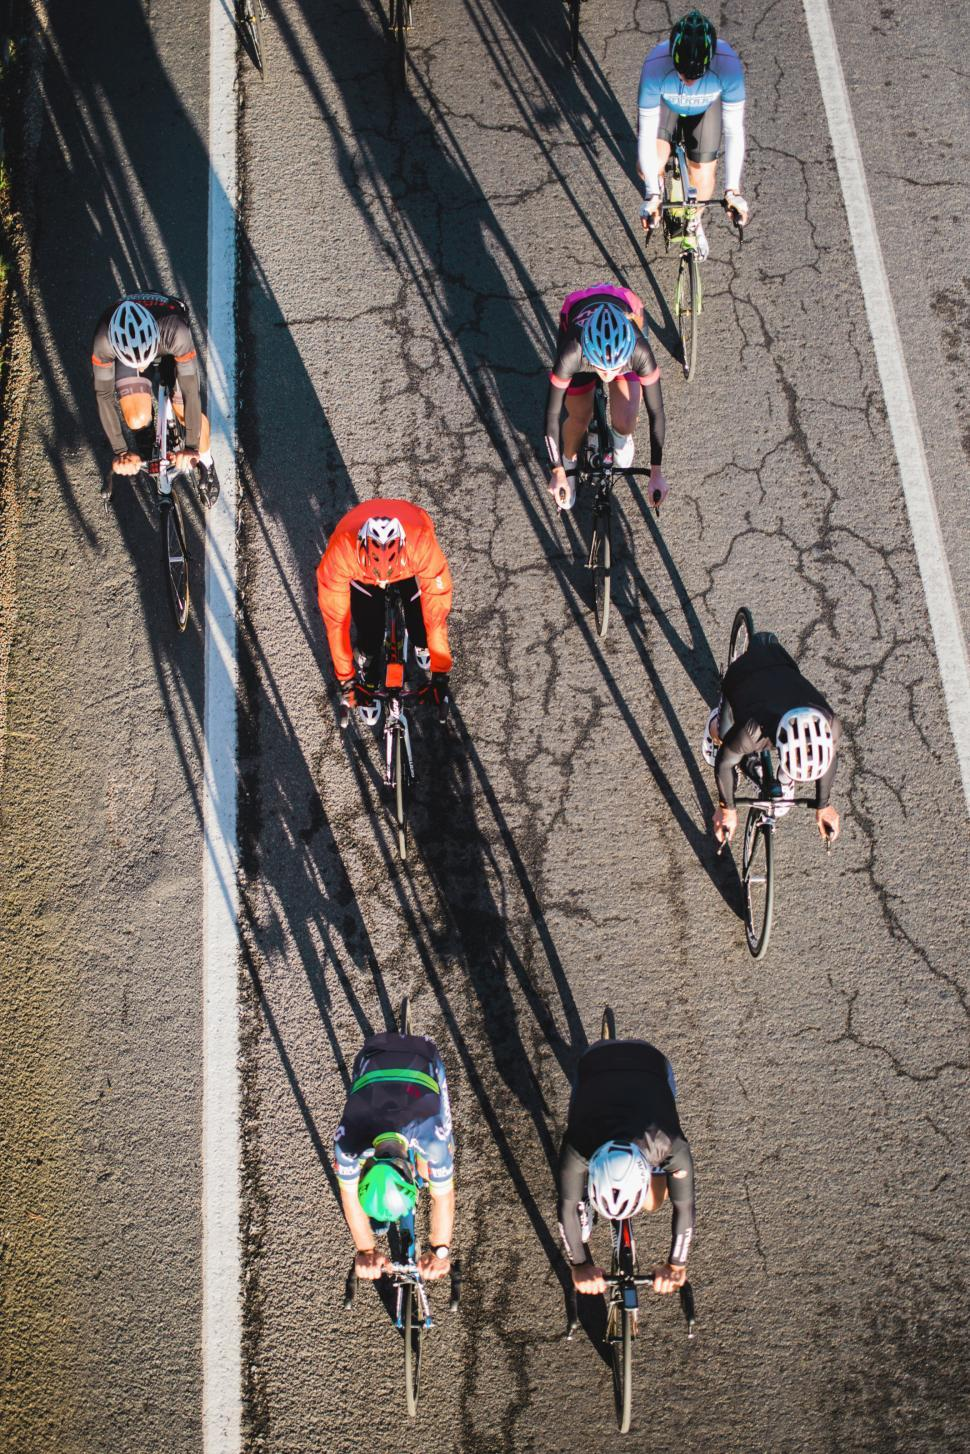 Download Free Stock HD Photo of Bicycle race view from above Online